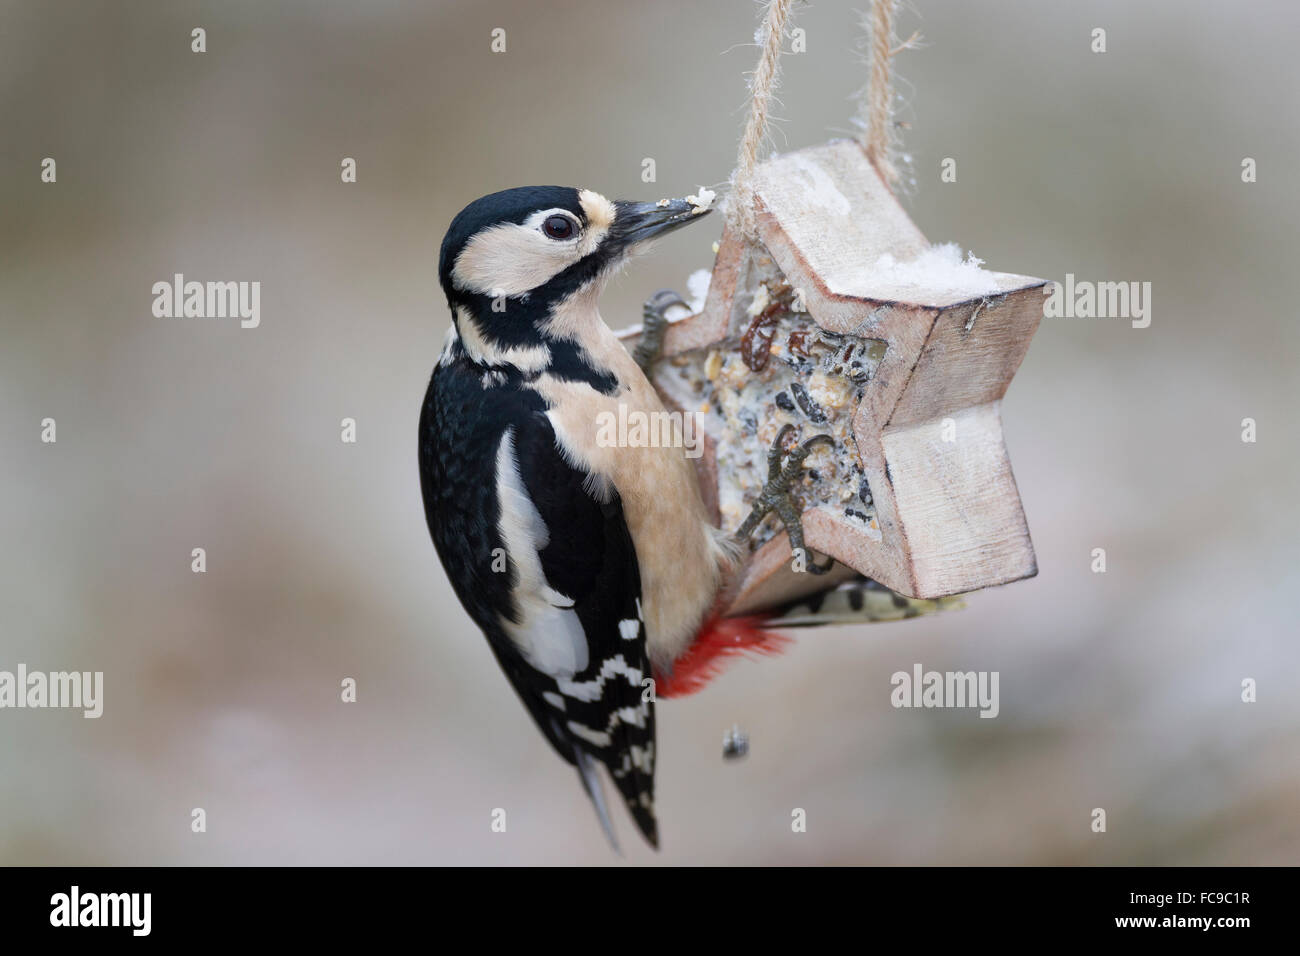 Great spotted woodpecker, bird's feeding, Buntspecht, Vogelfütterung, Fütterung, Dendrocopos major, - Stock Image